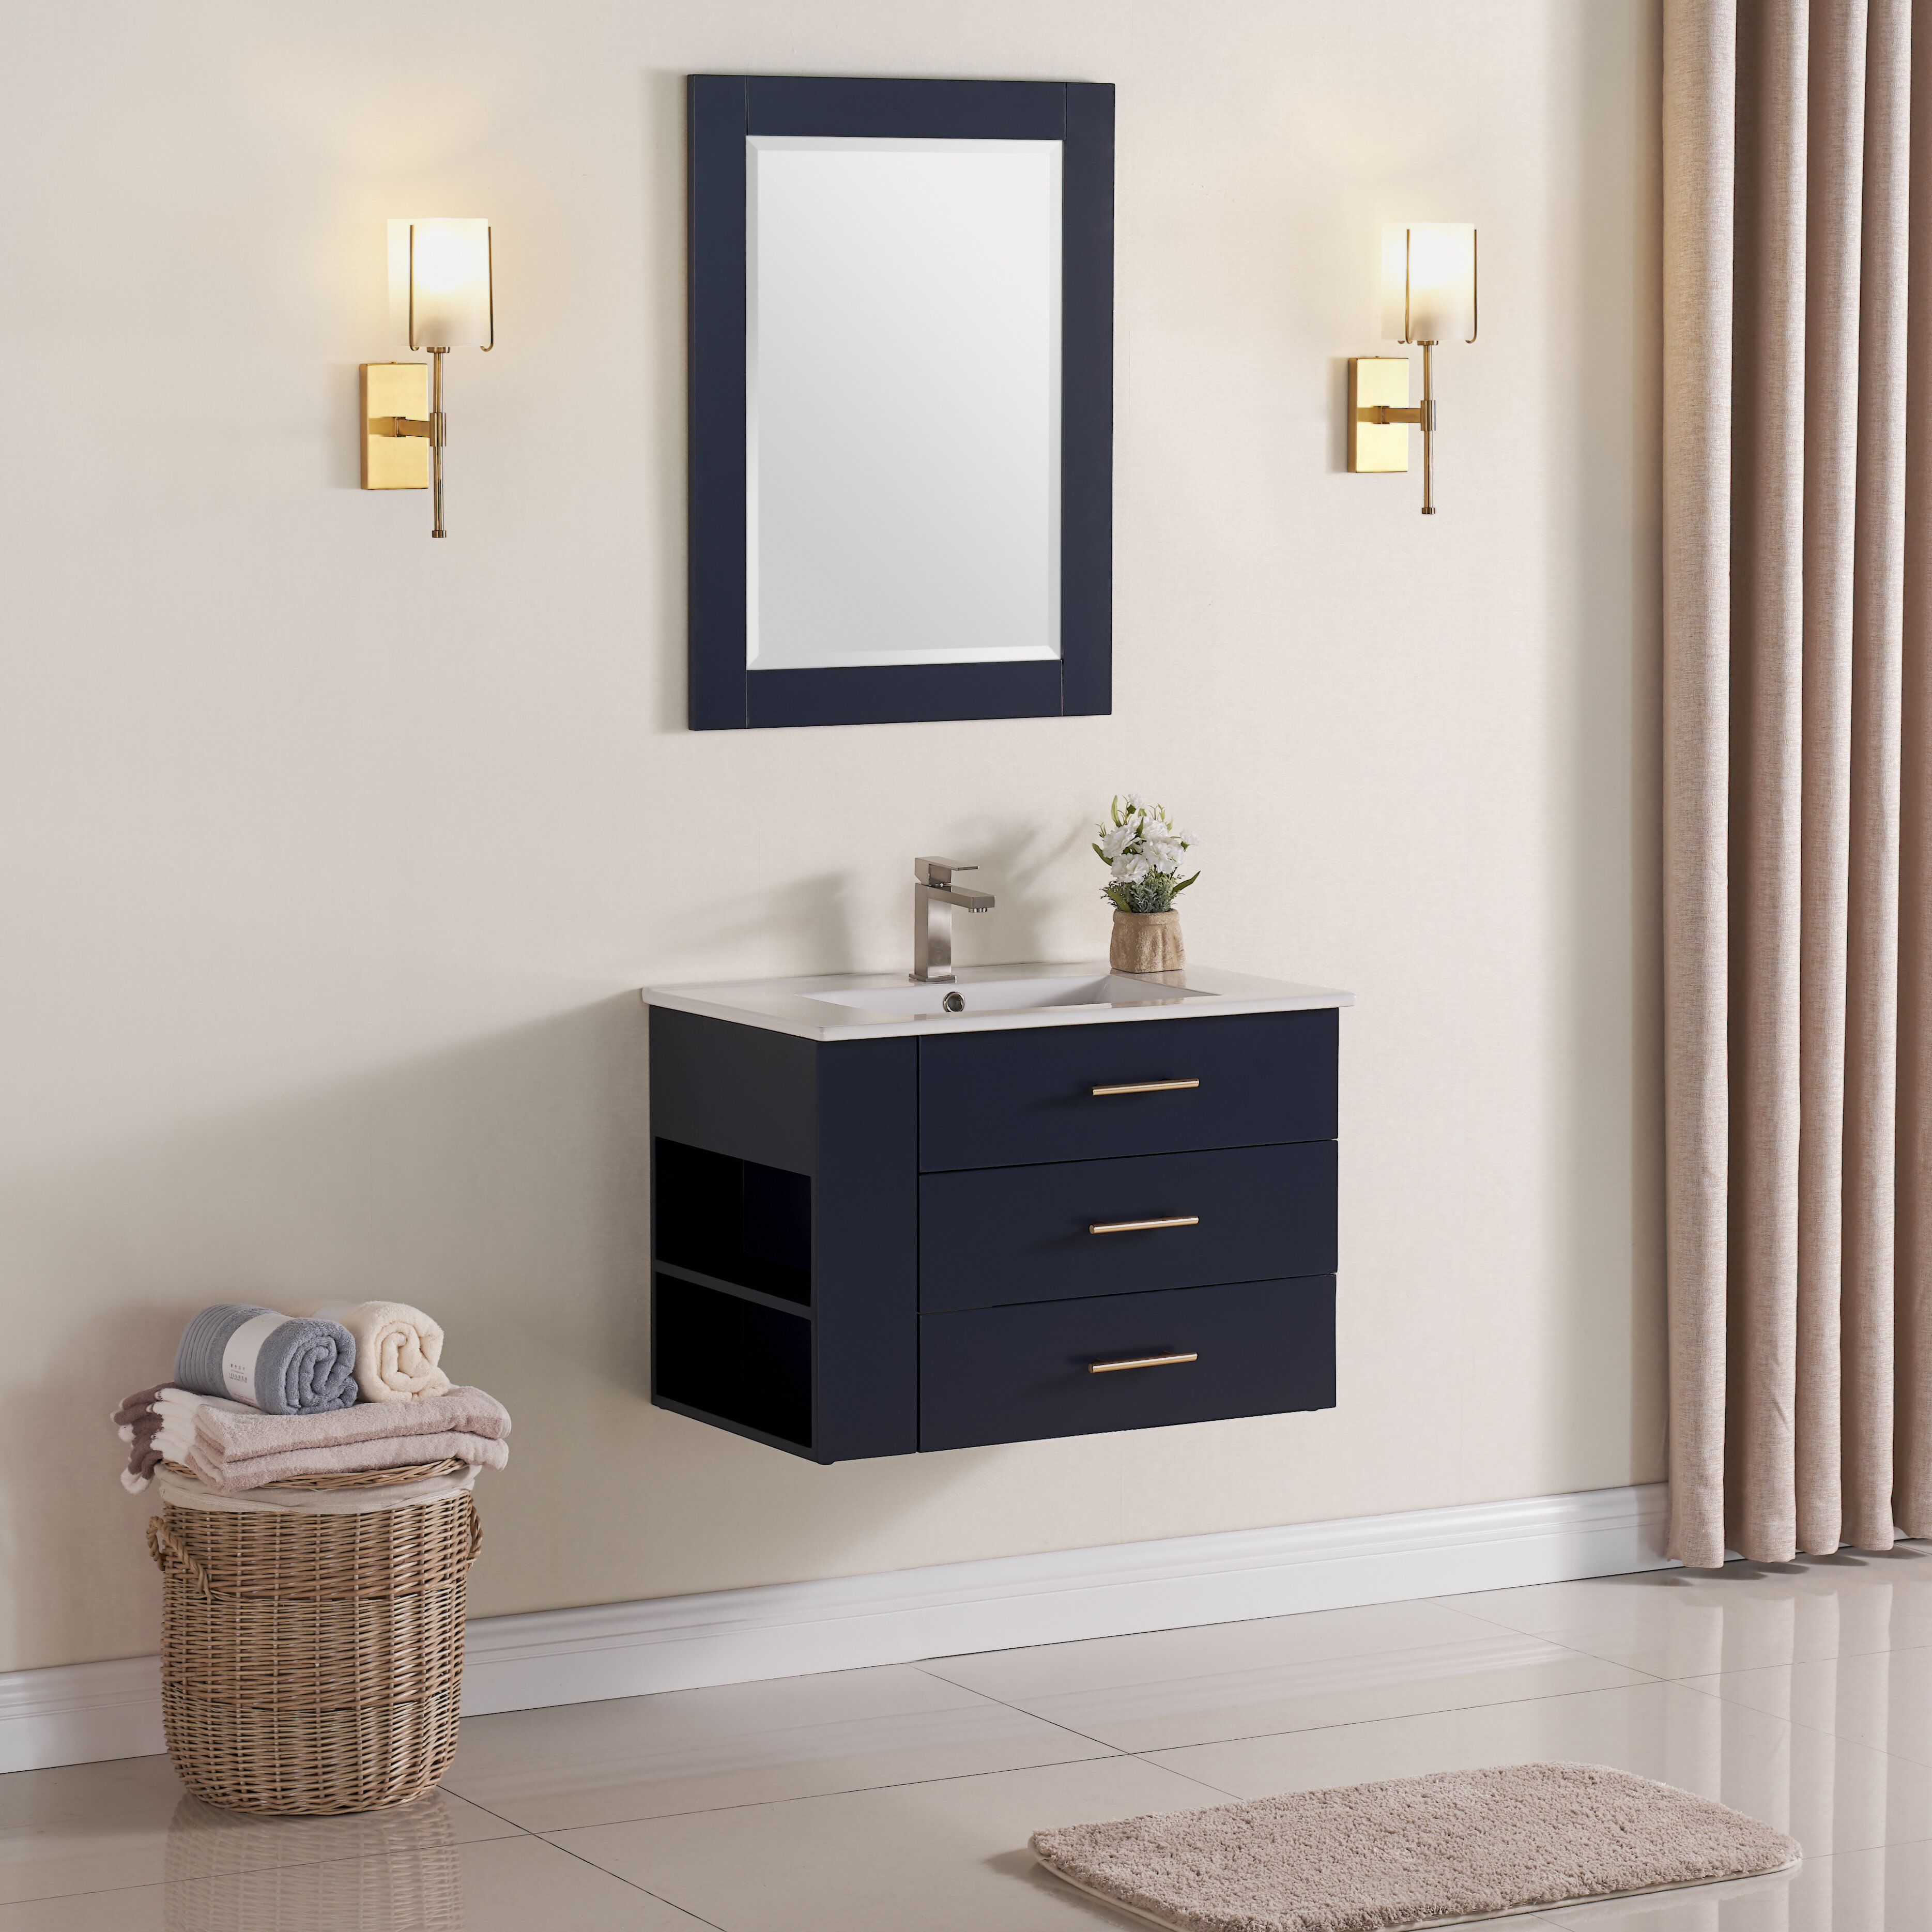 "Exquisite Home 12"" Wall-Mounted Single Bathroom Vanity Set with Mirror"